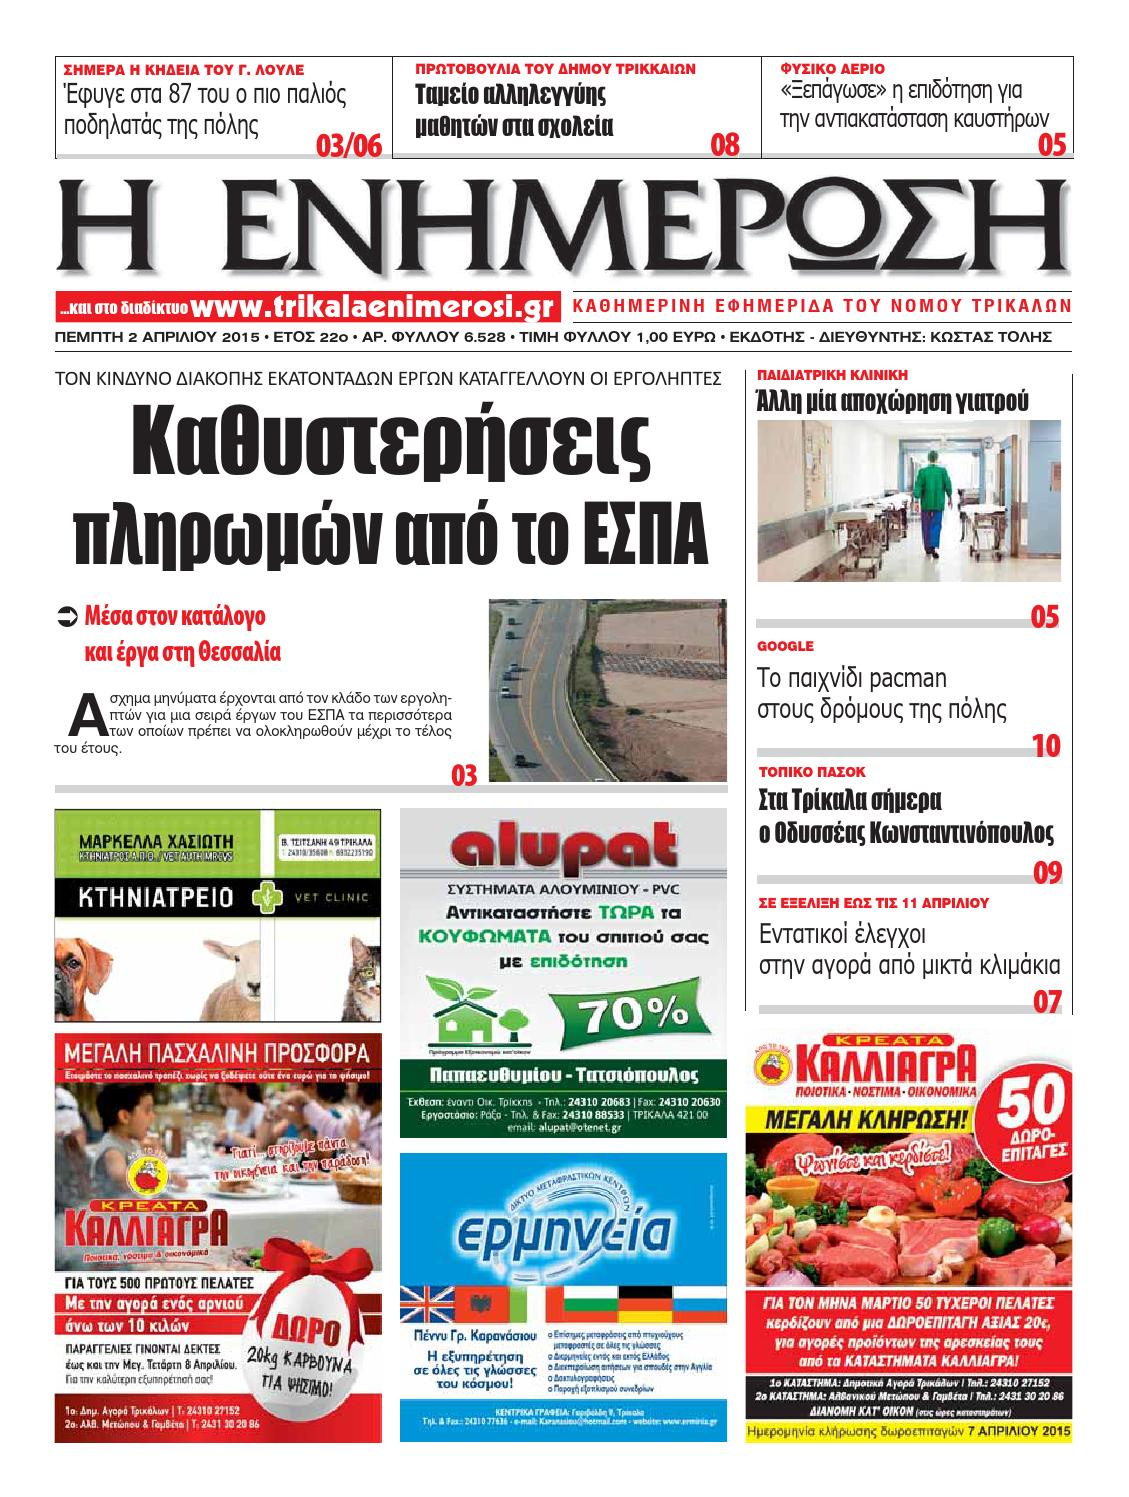 ΕΝΗΜΕΡΩΣΗ by ENHMEROSH - issuu cbd6974fa09